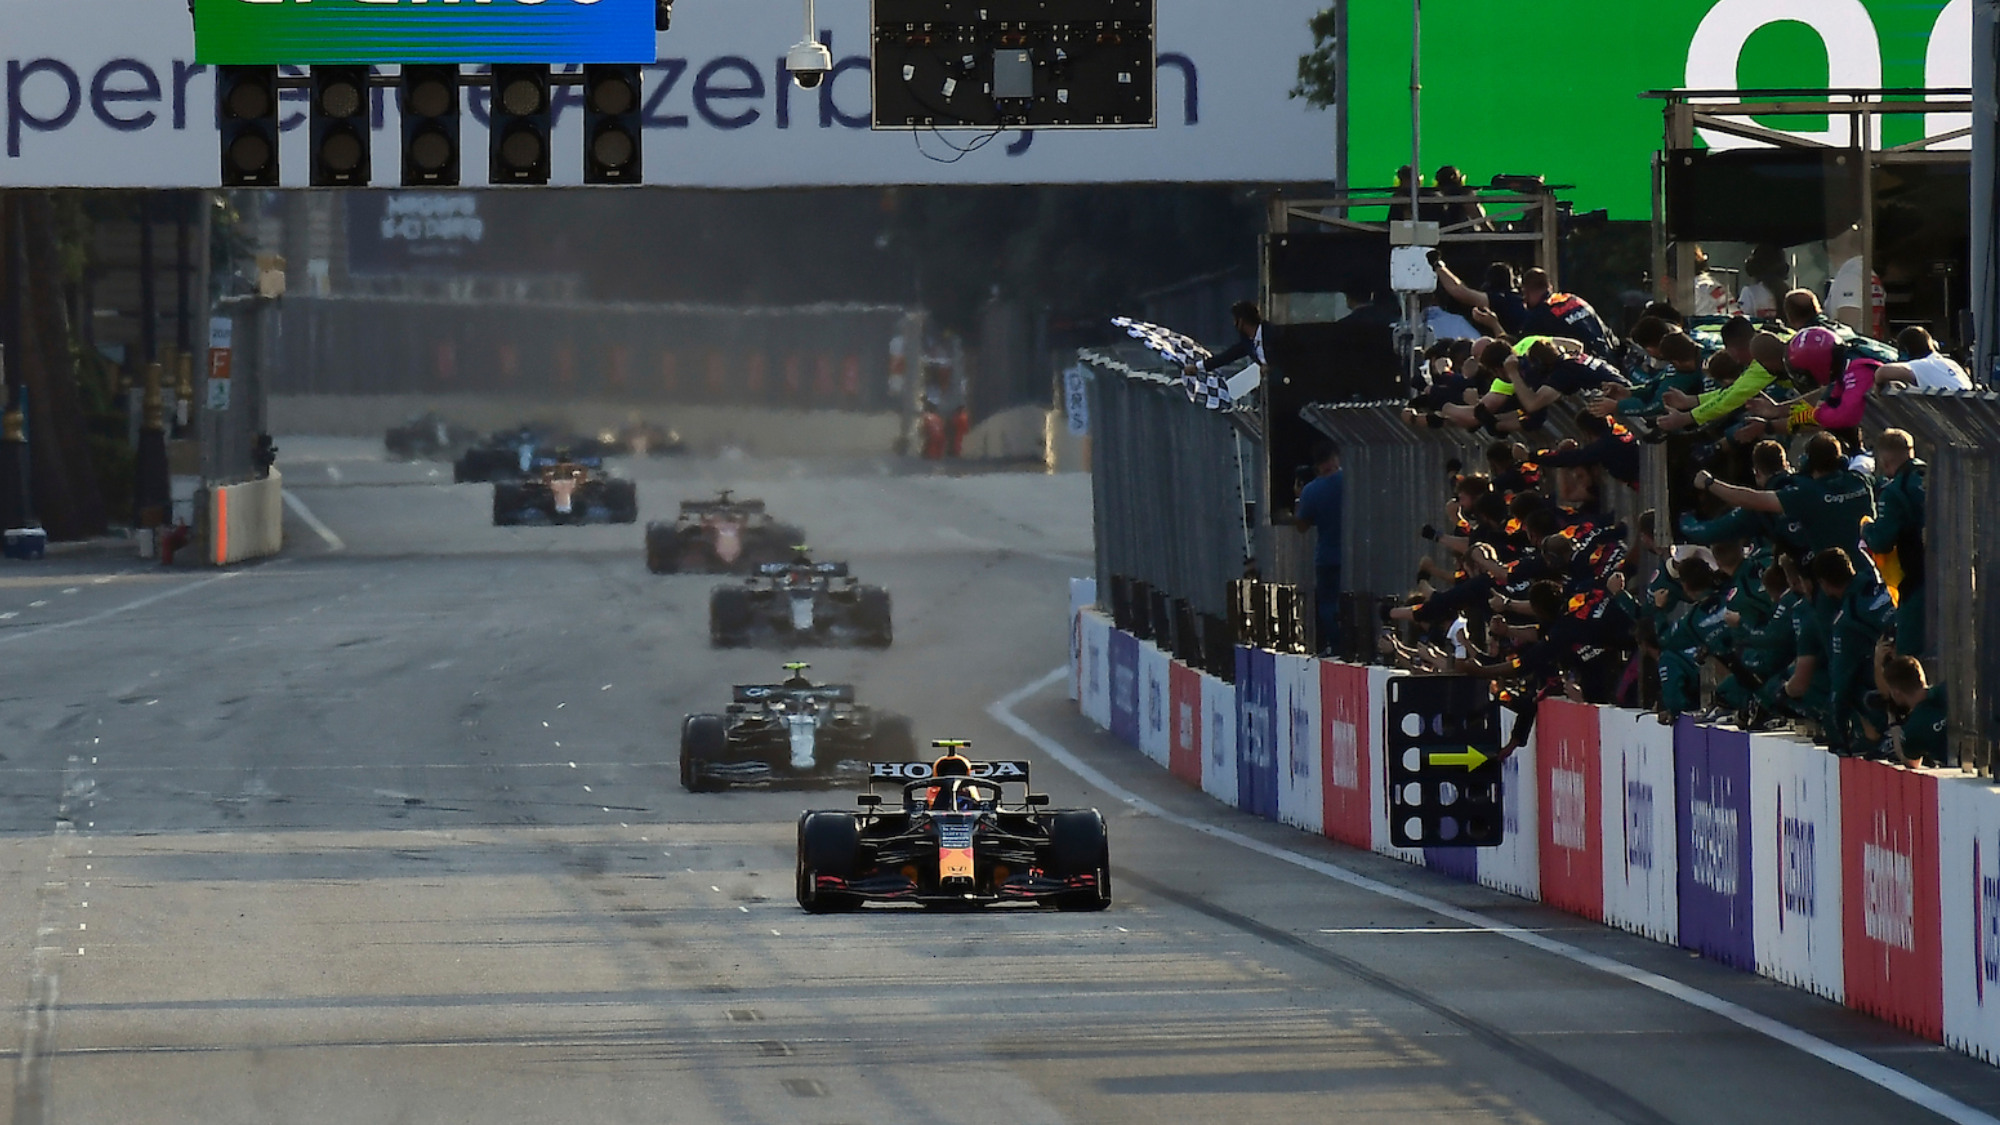 Near misses and bad switches: 2021 Azerbaijan Grand Prix what you missed